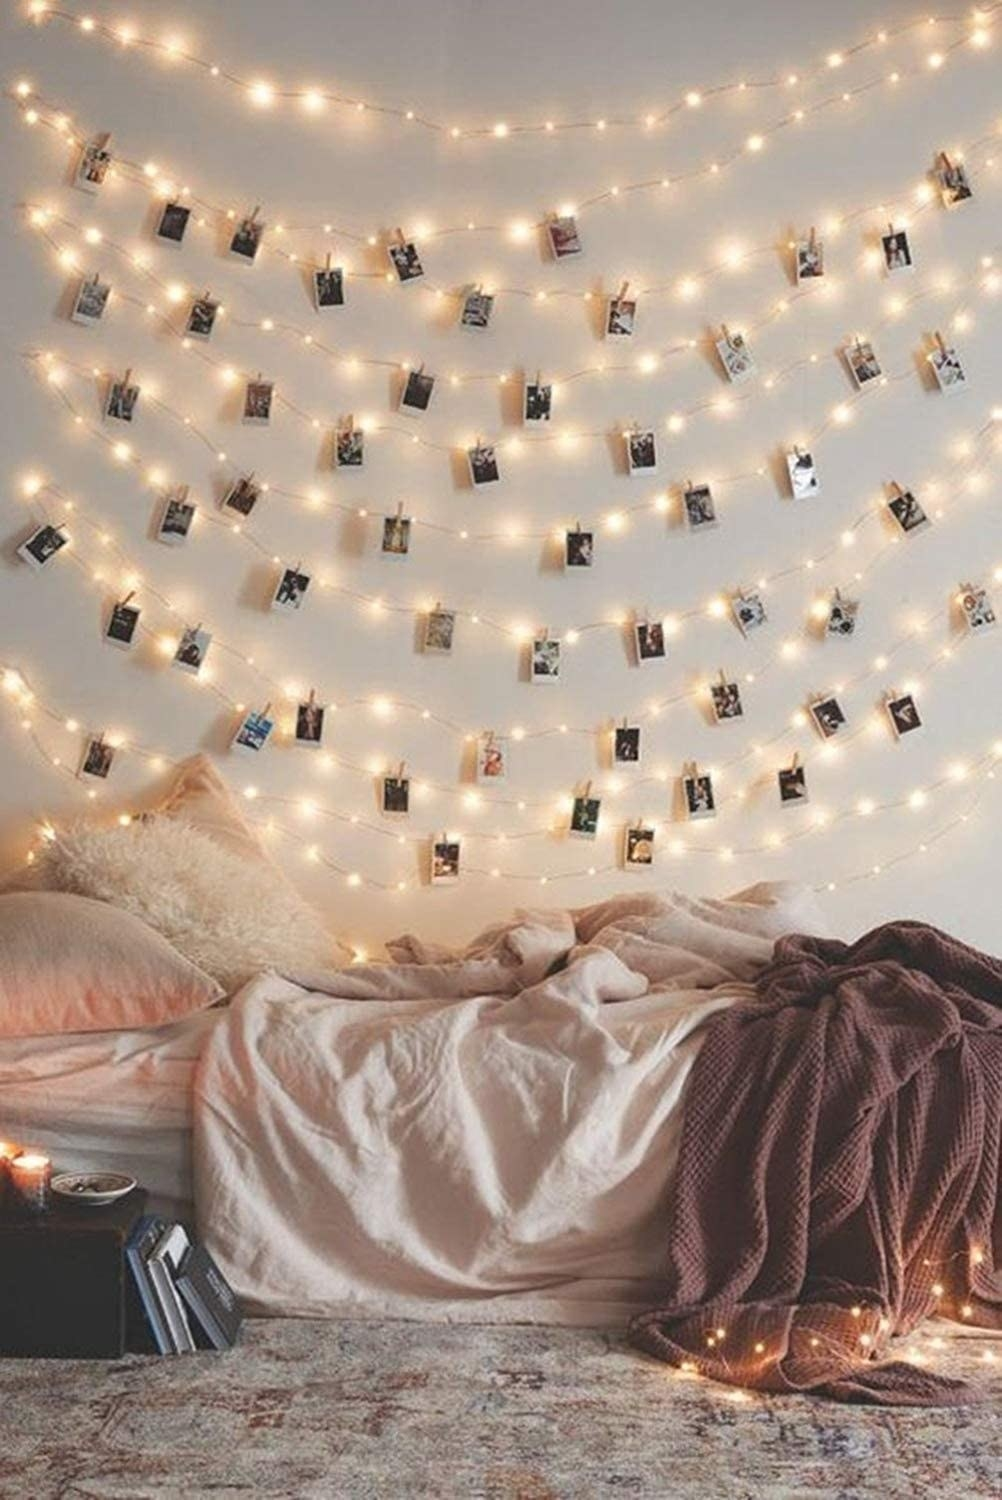 string lights with polaroid pics clipped onto them above a bed